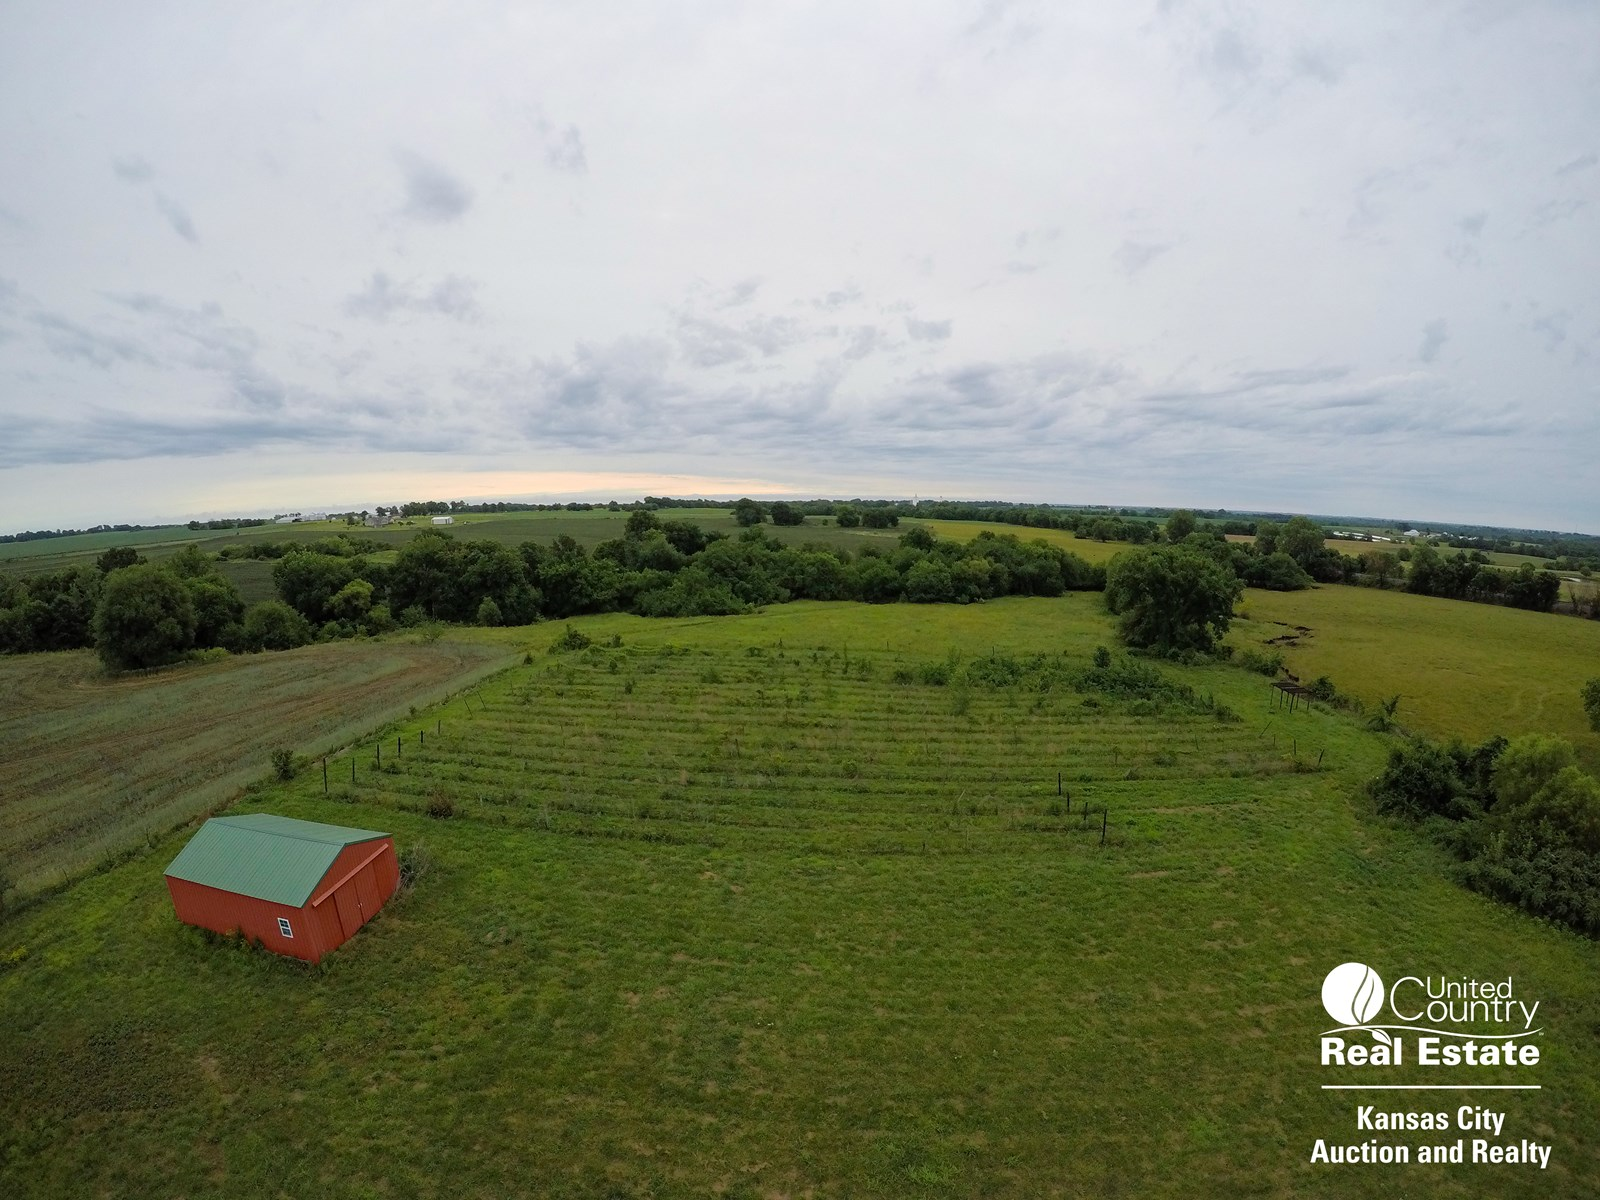 Vineyard Acreage For Sale in Centerview Missouri, Johnson Co